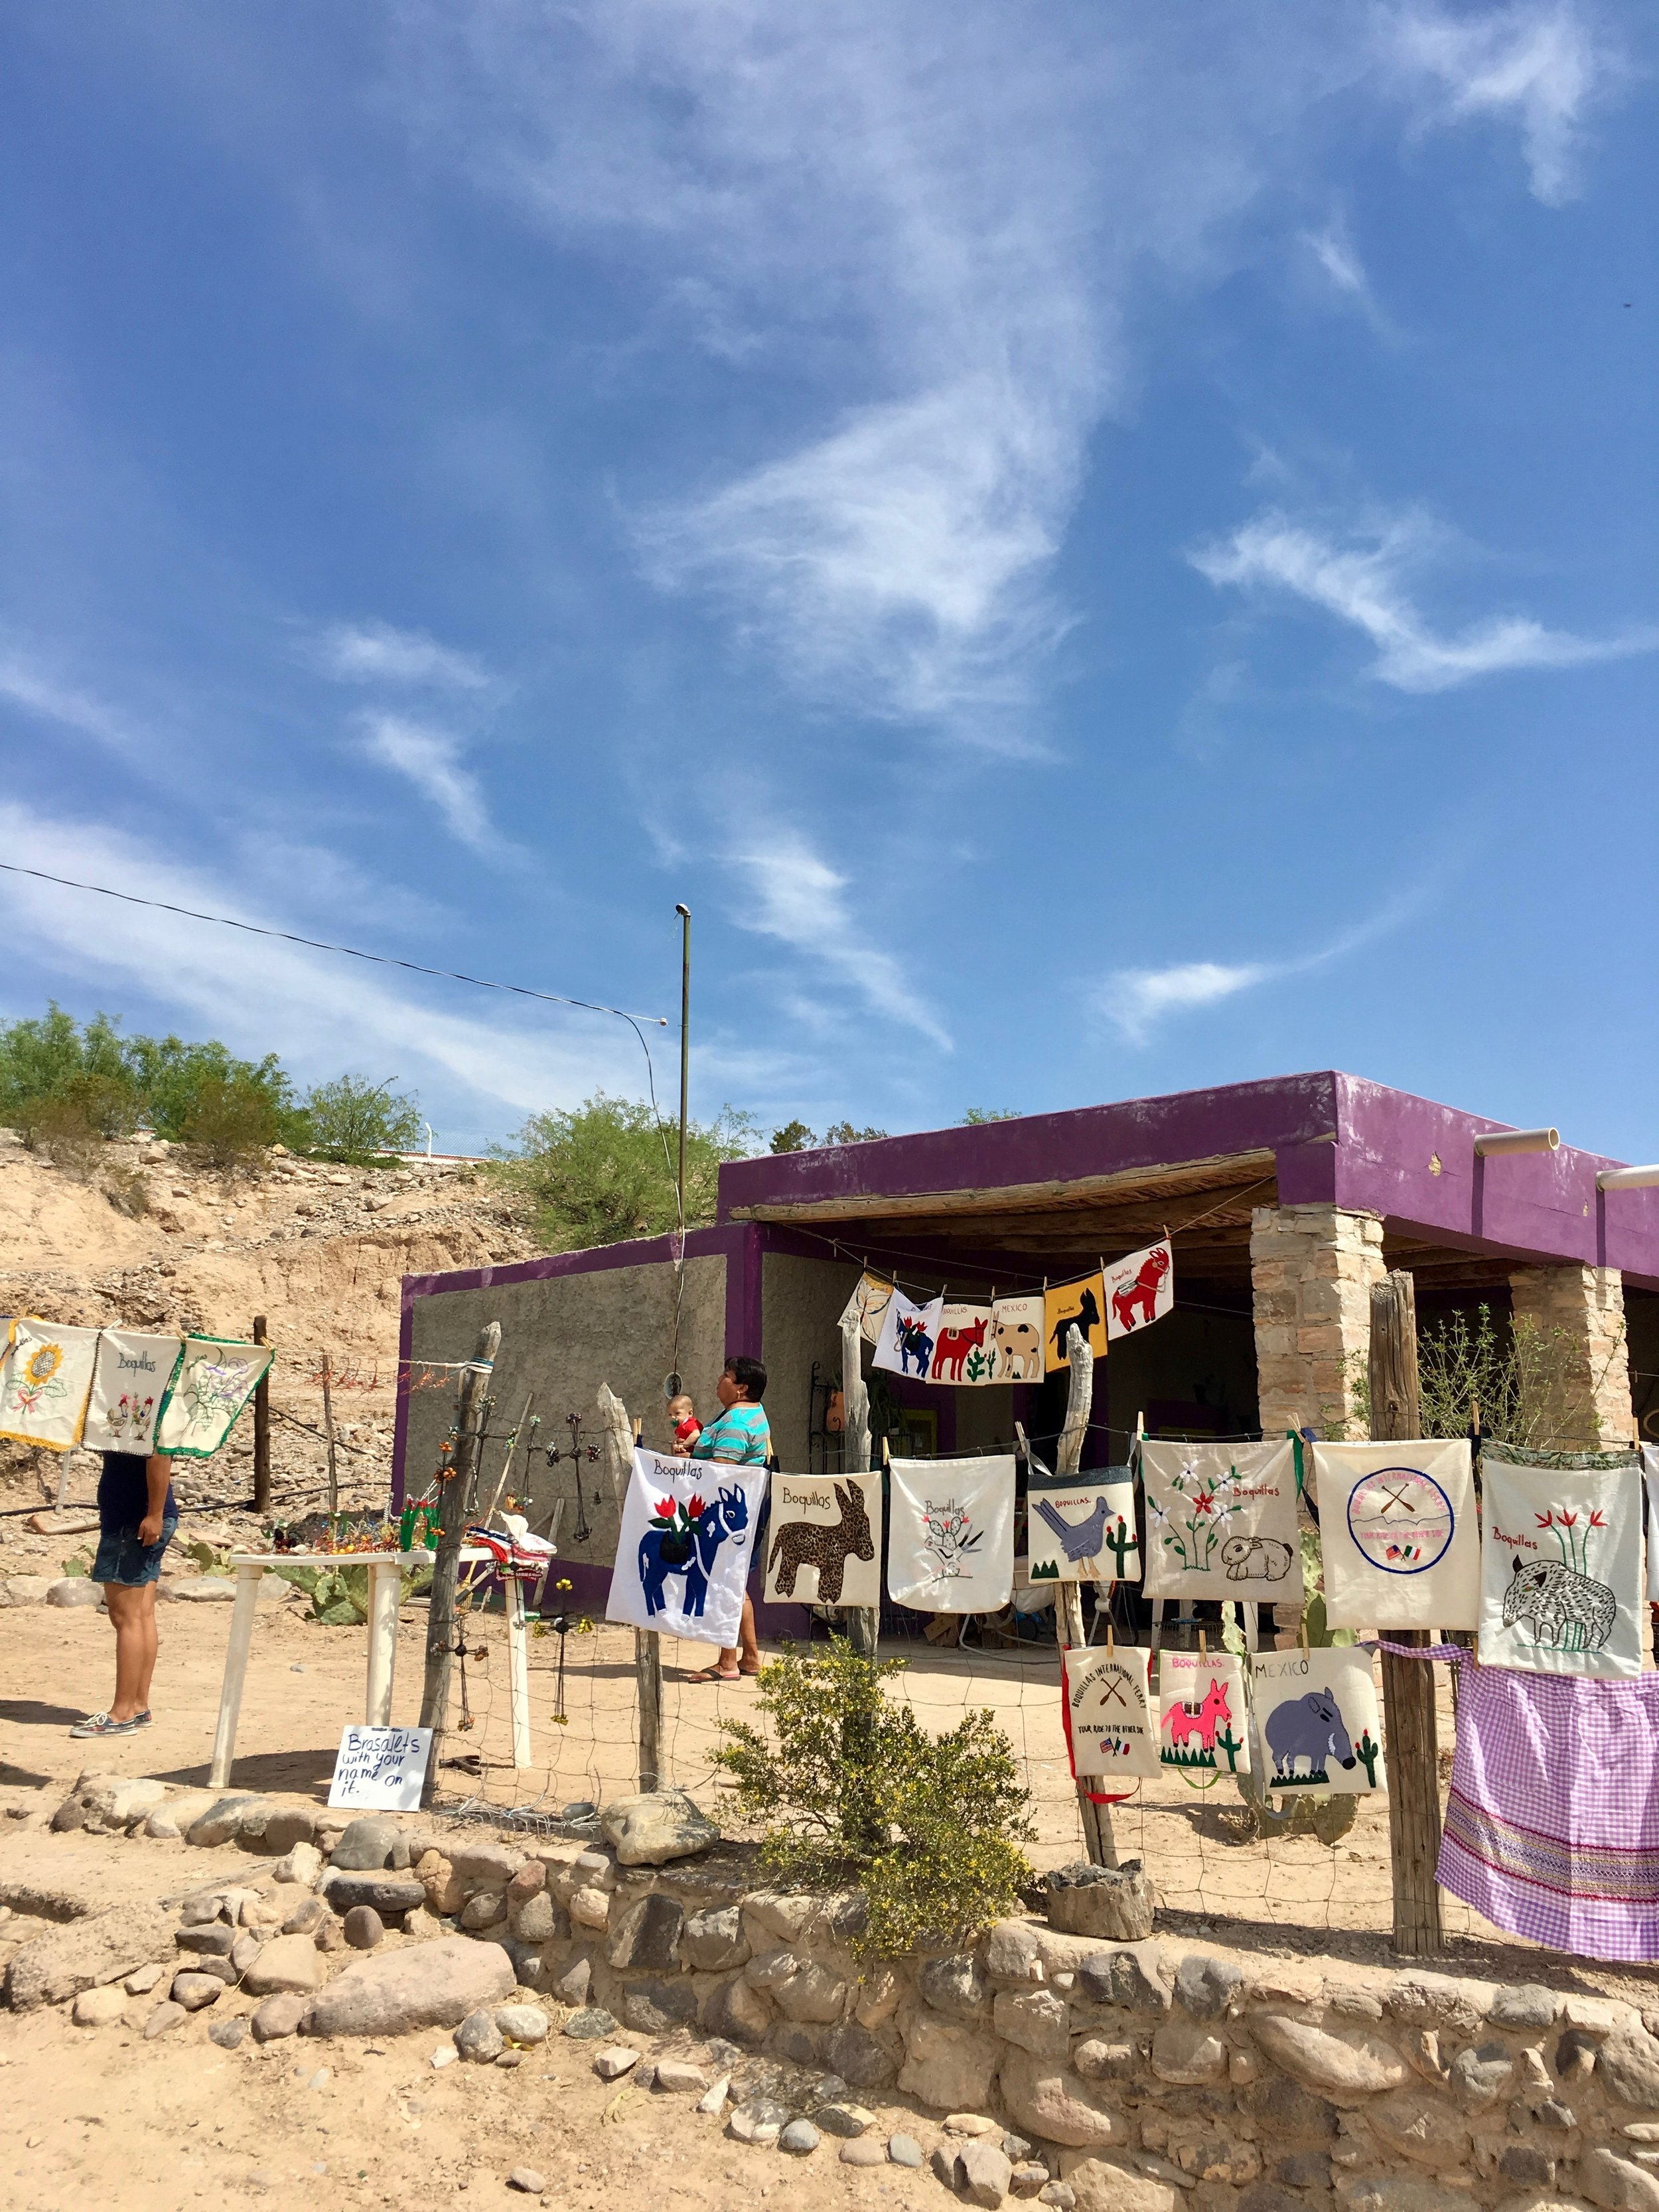 Boquillas is a tourist town and these are its souvenirs.